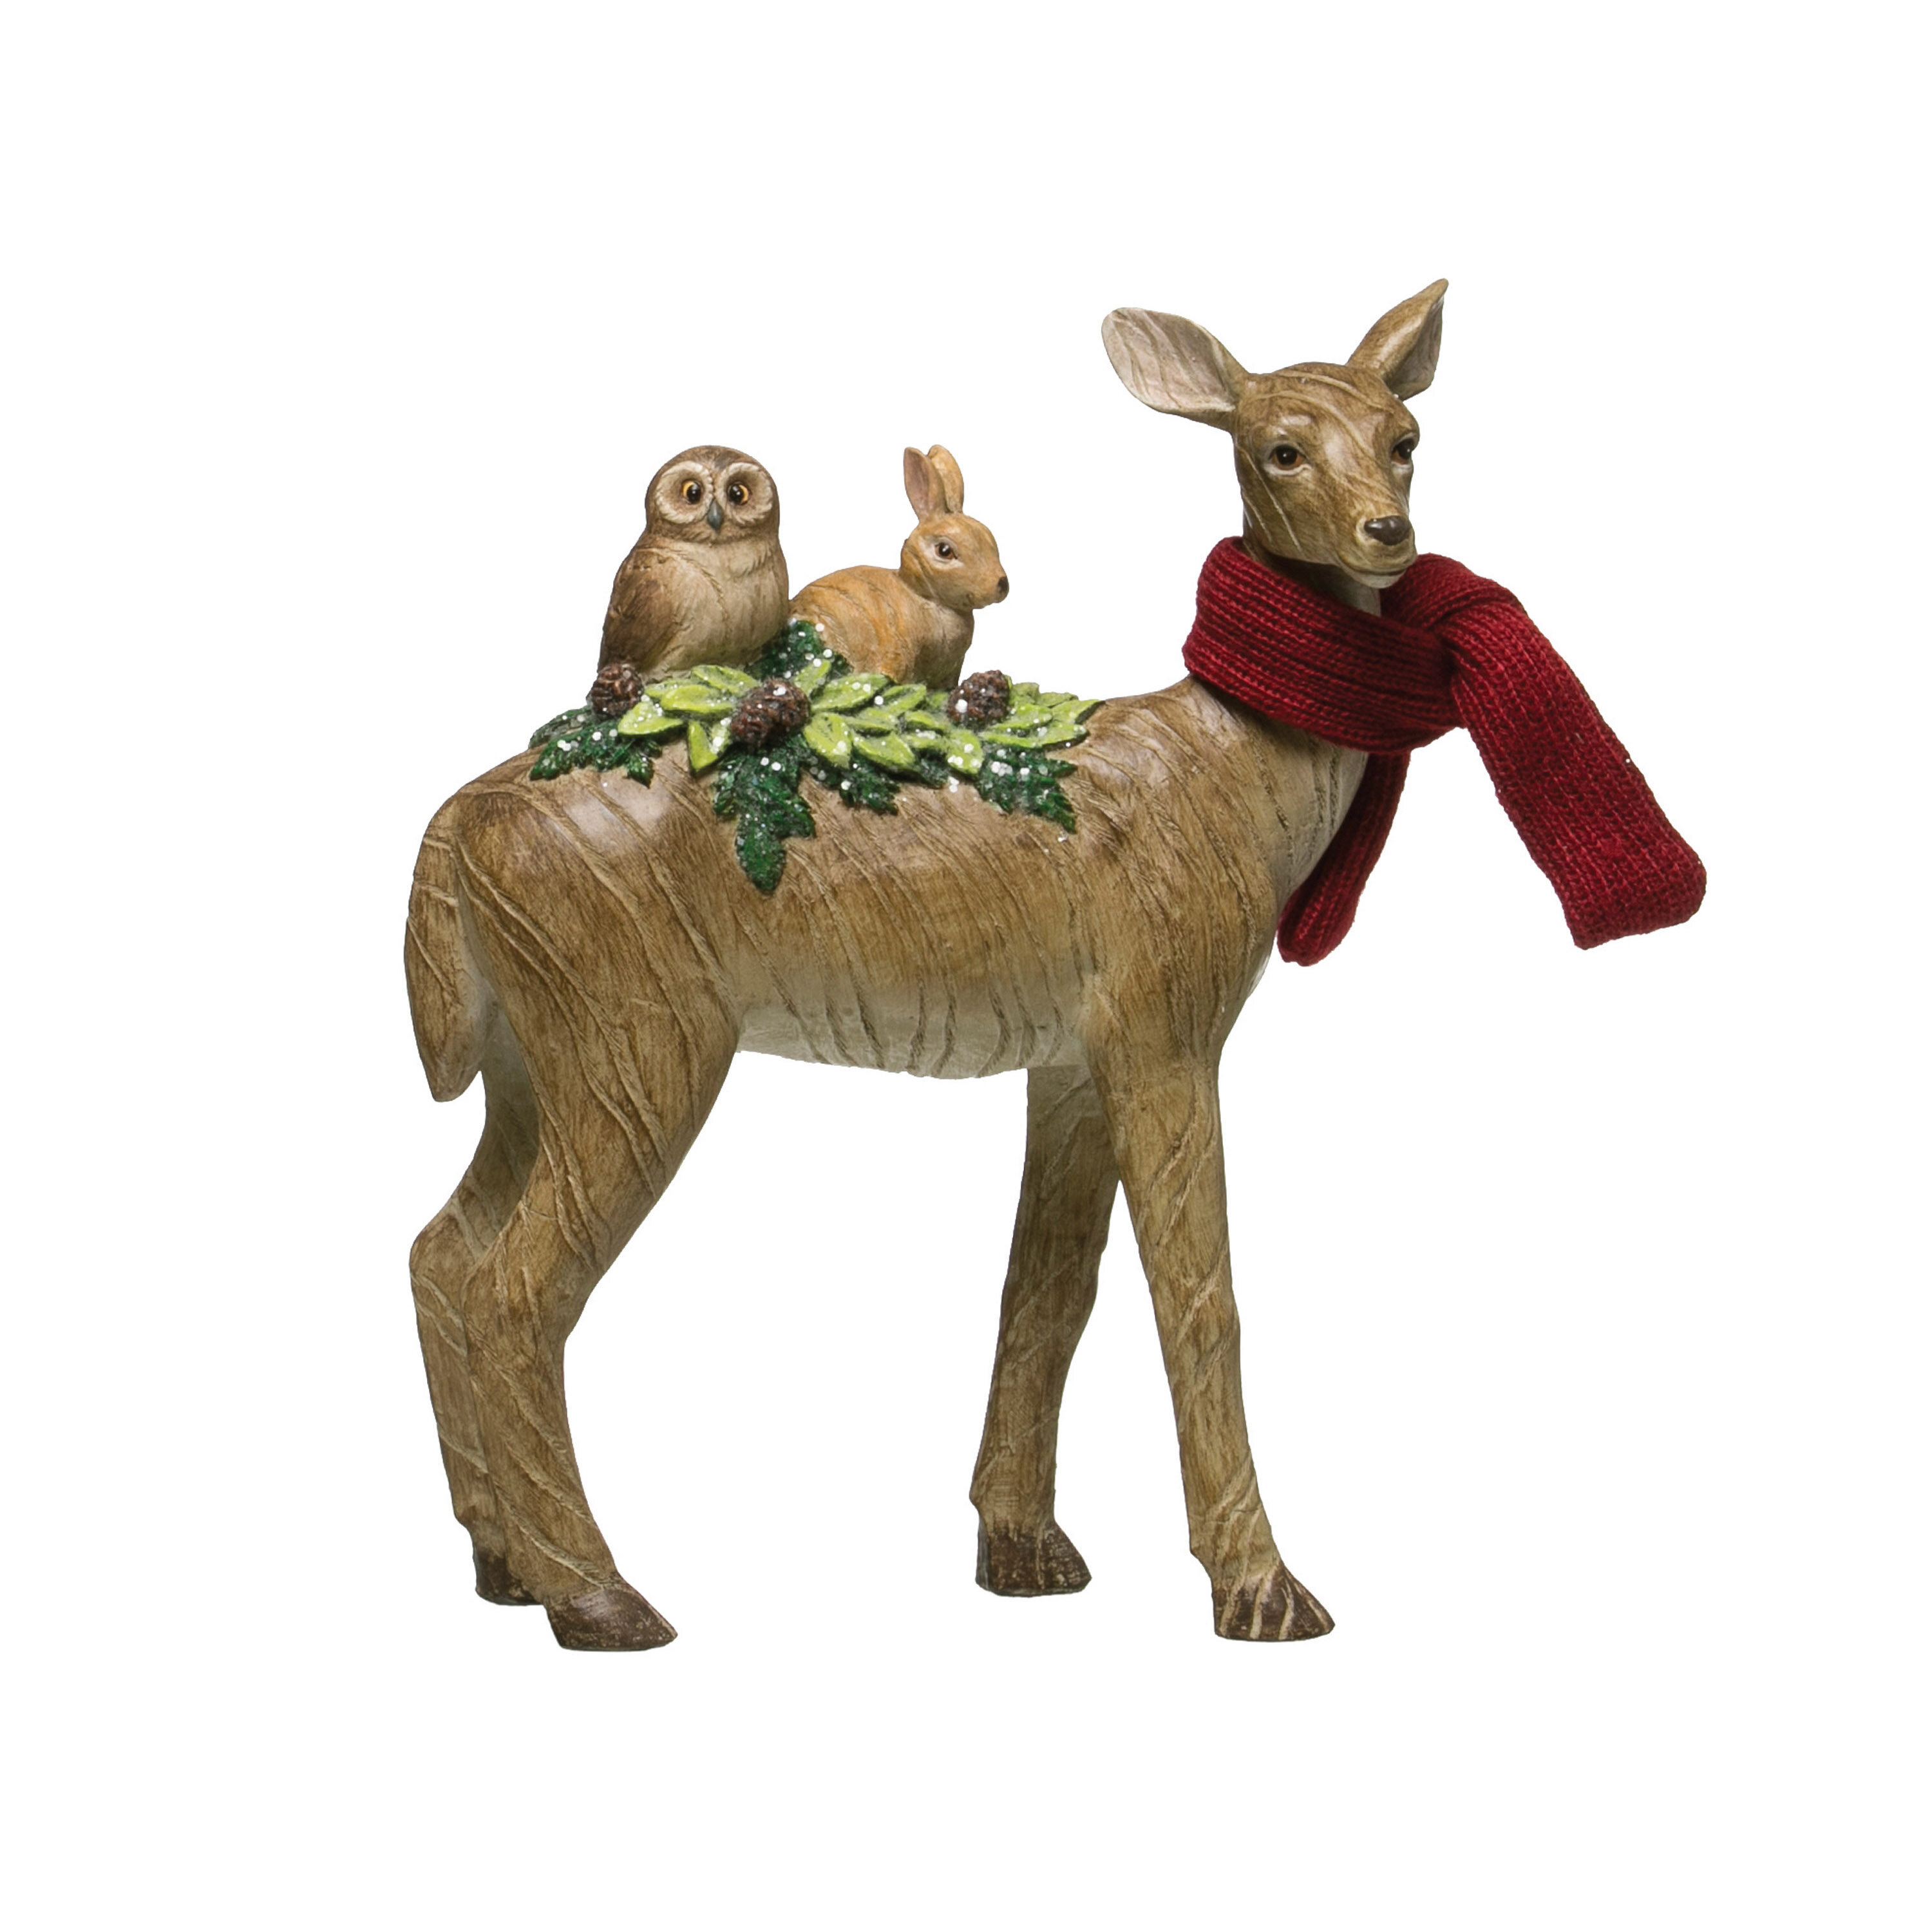 The Holiday Aisle Resin Standing Deer With Crittersand Fabric Scarf Wayfair